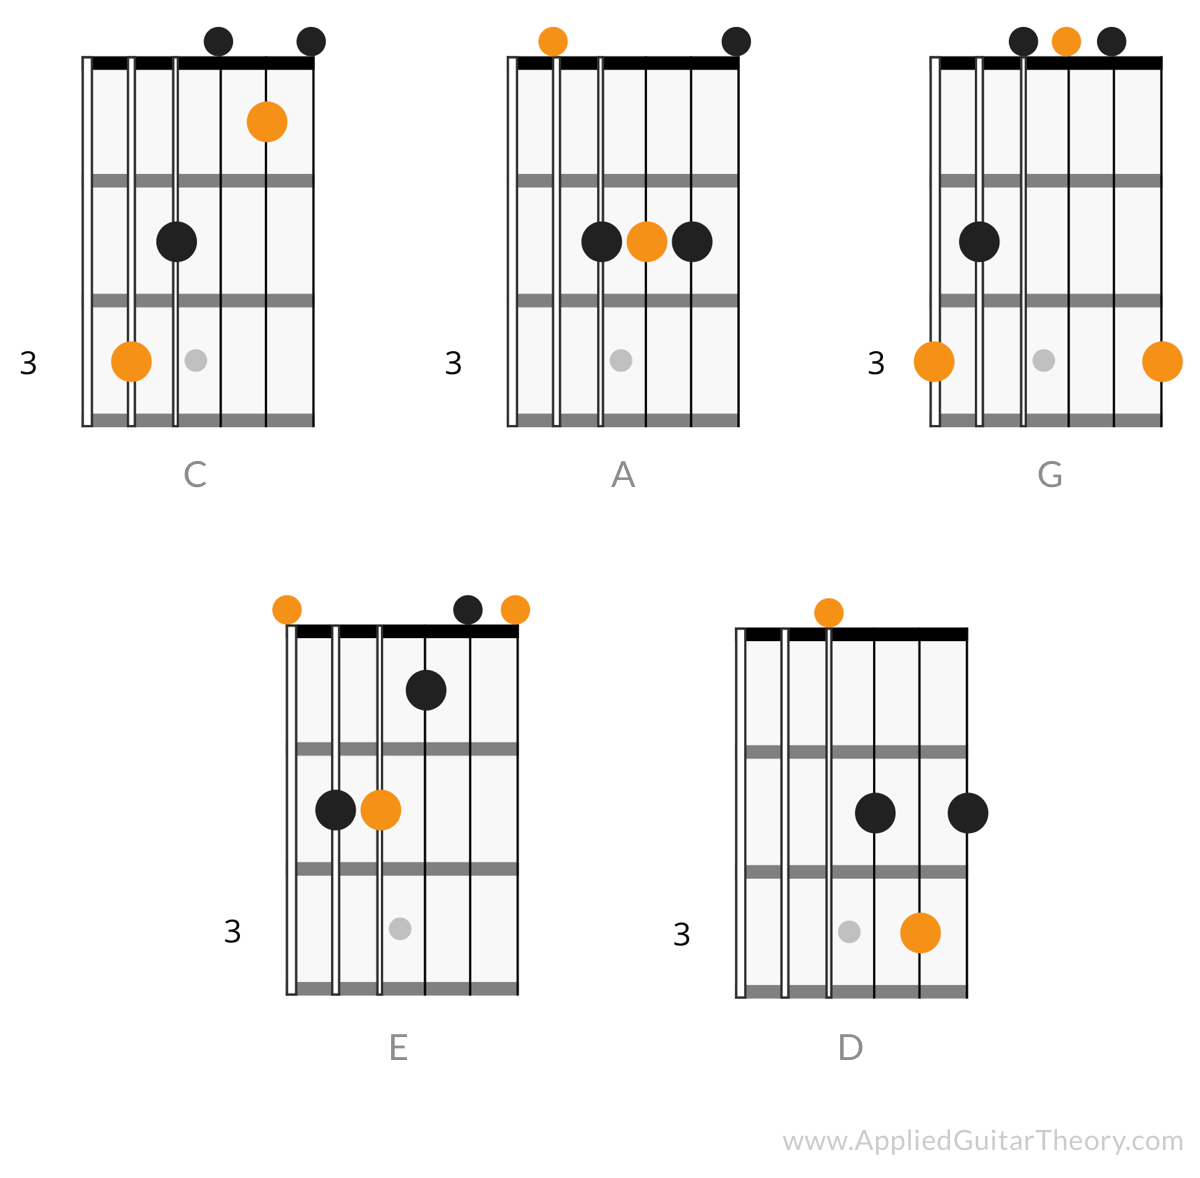 CAGED guitar theory system open chord shapes